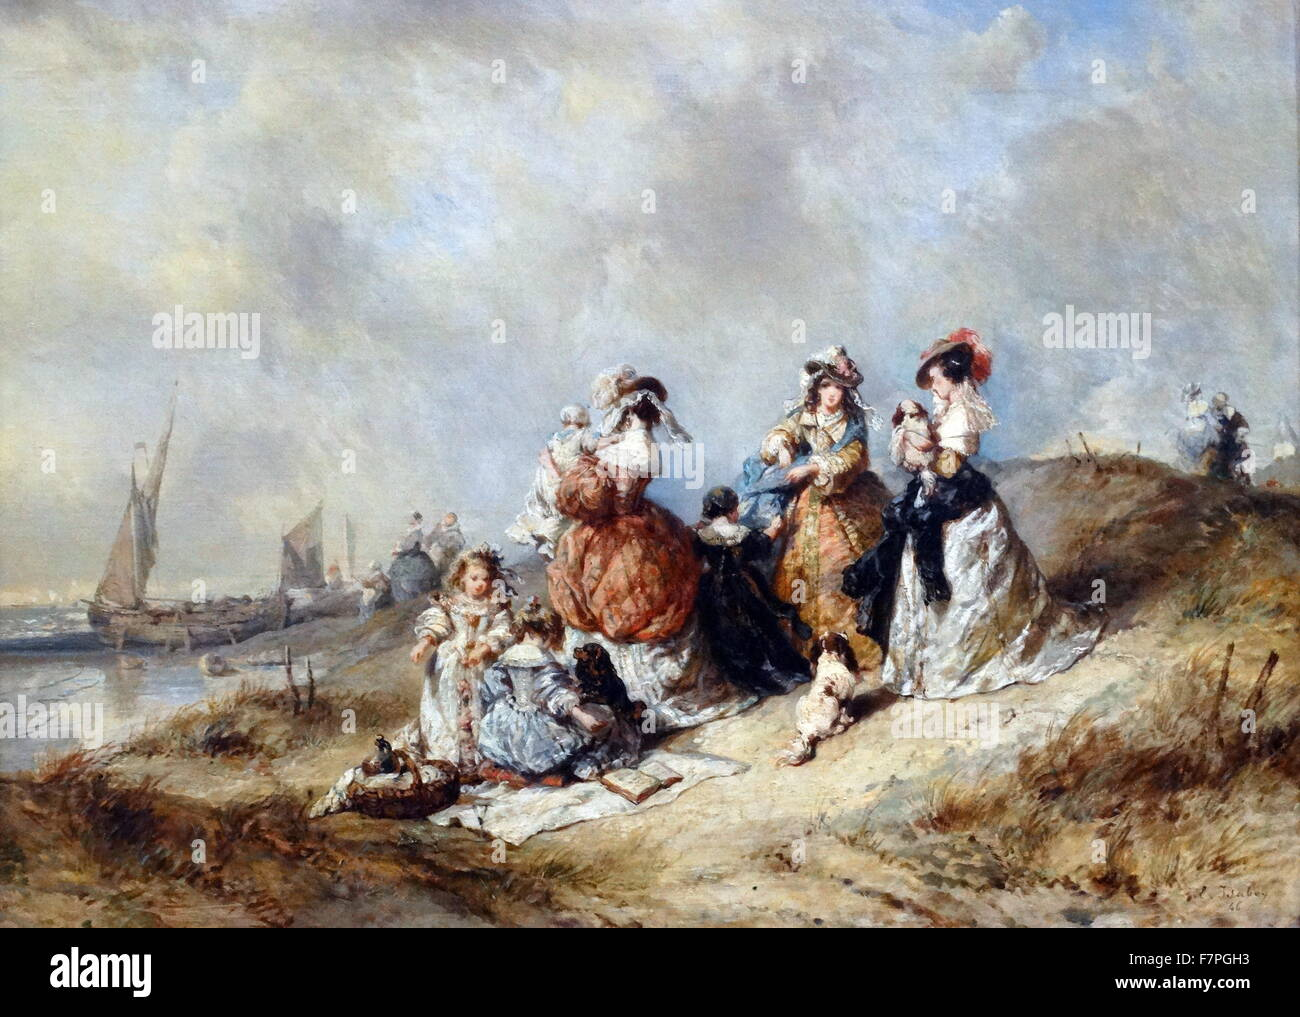 Painting titled 'A Promenade by the Sea' by Eugène Isabey (1804-1886) French painter, draftsman, and - Stock Image